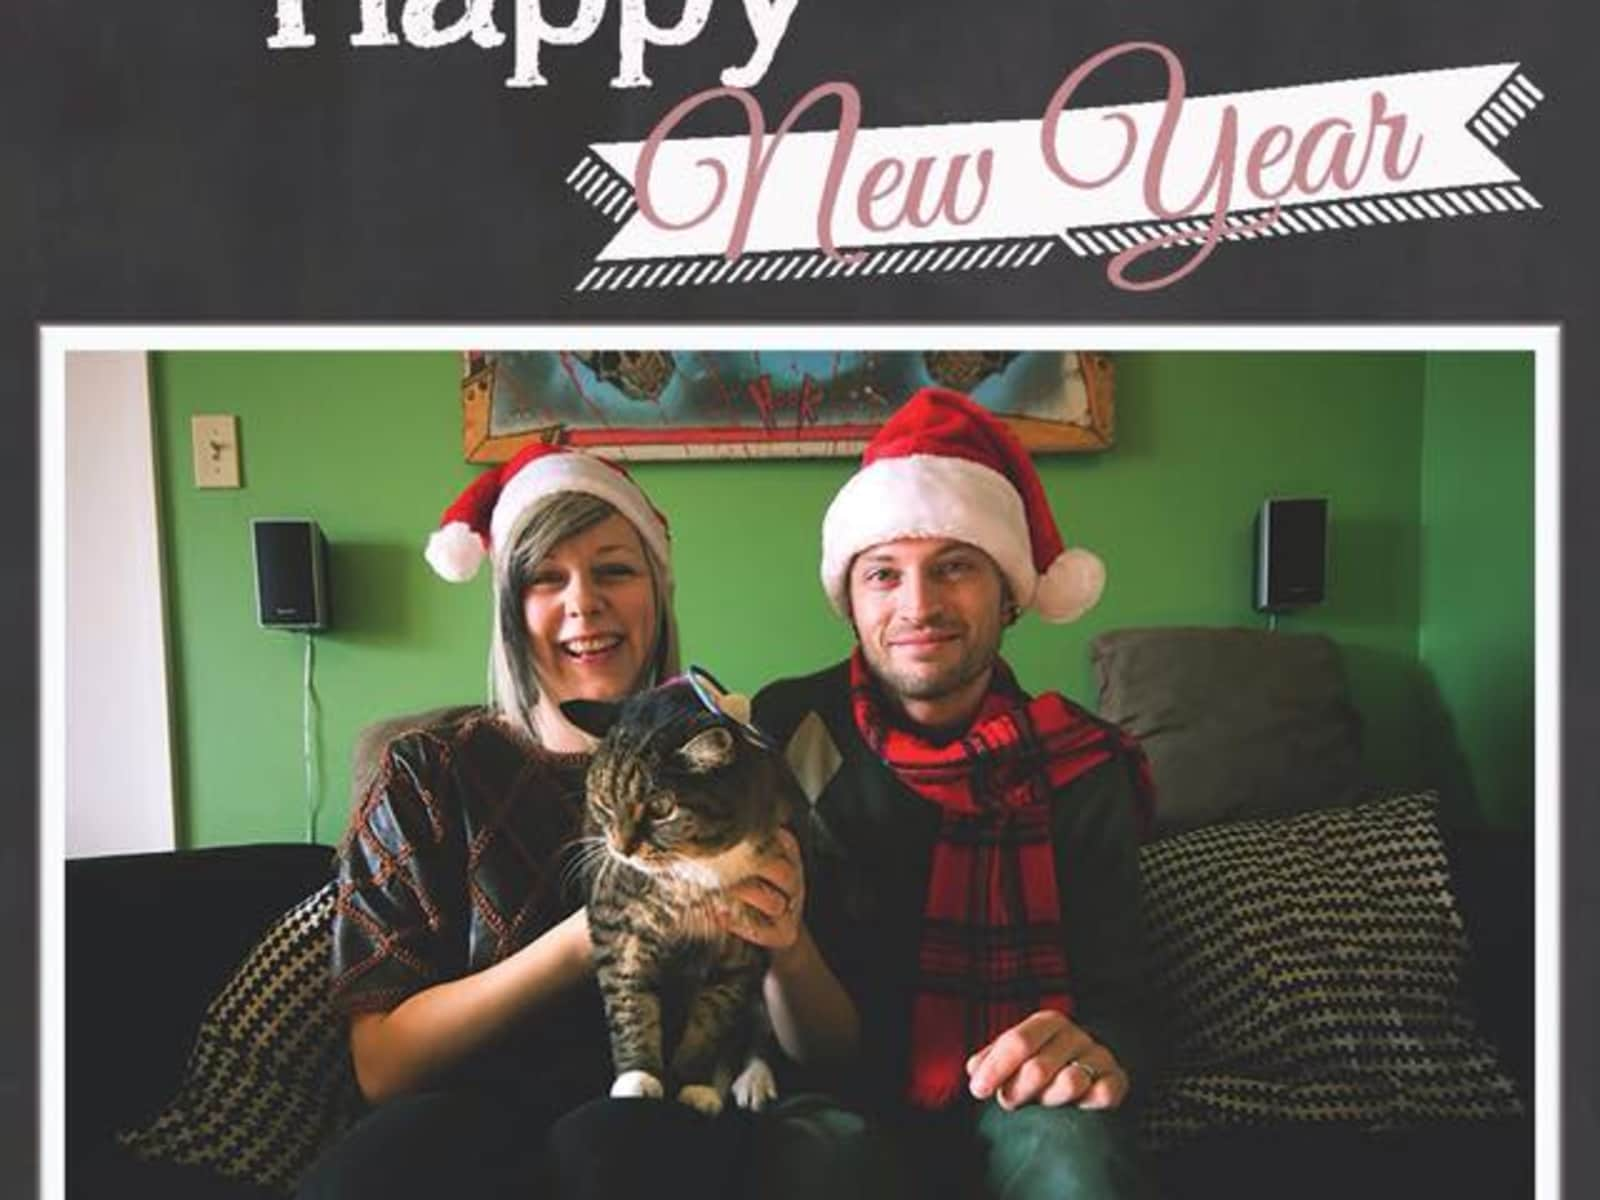 Monica & Brent from Vancouver, British Columbia, Canada